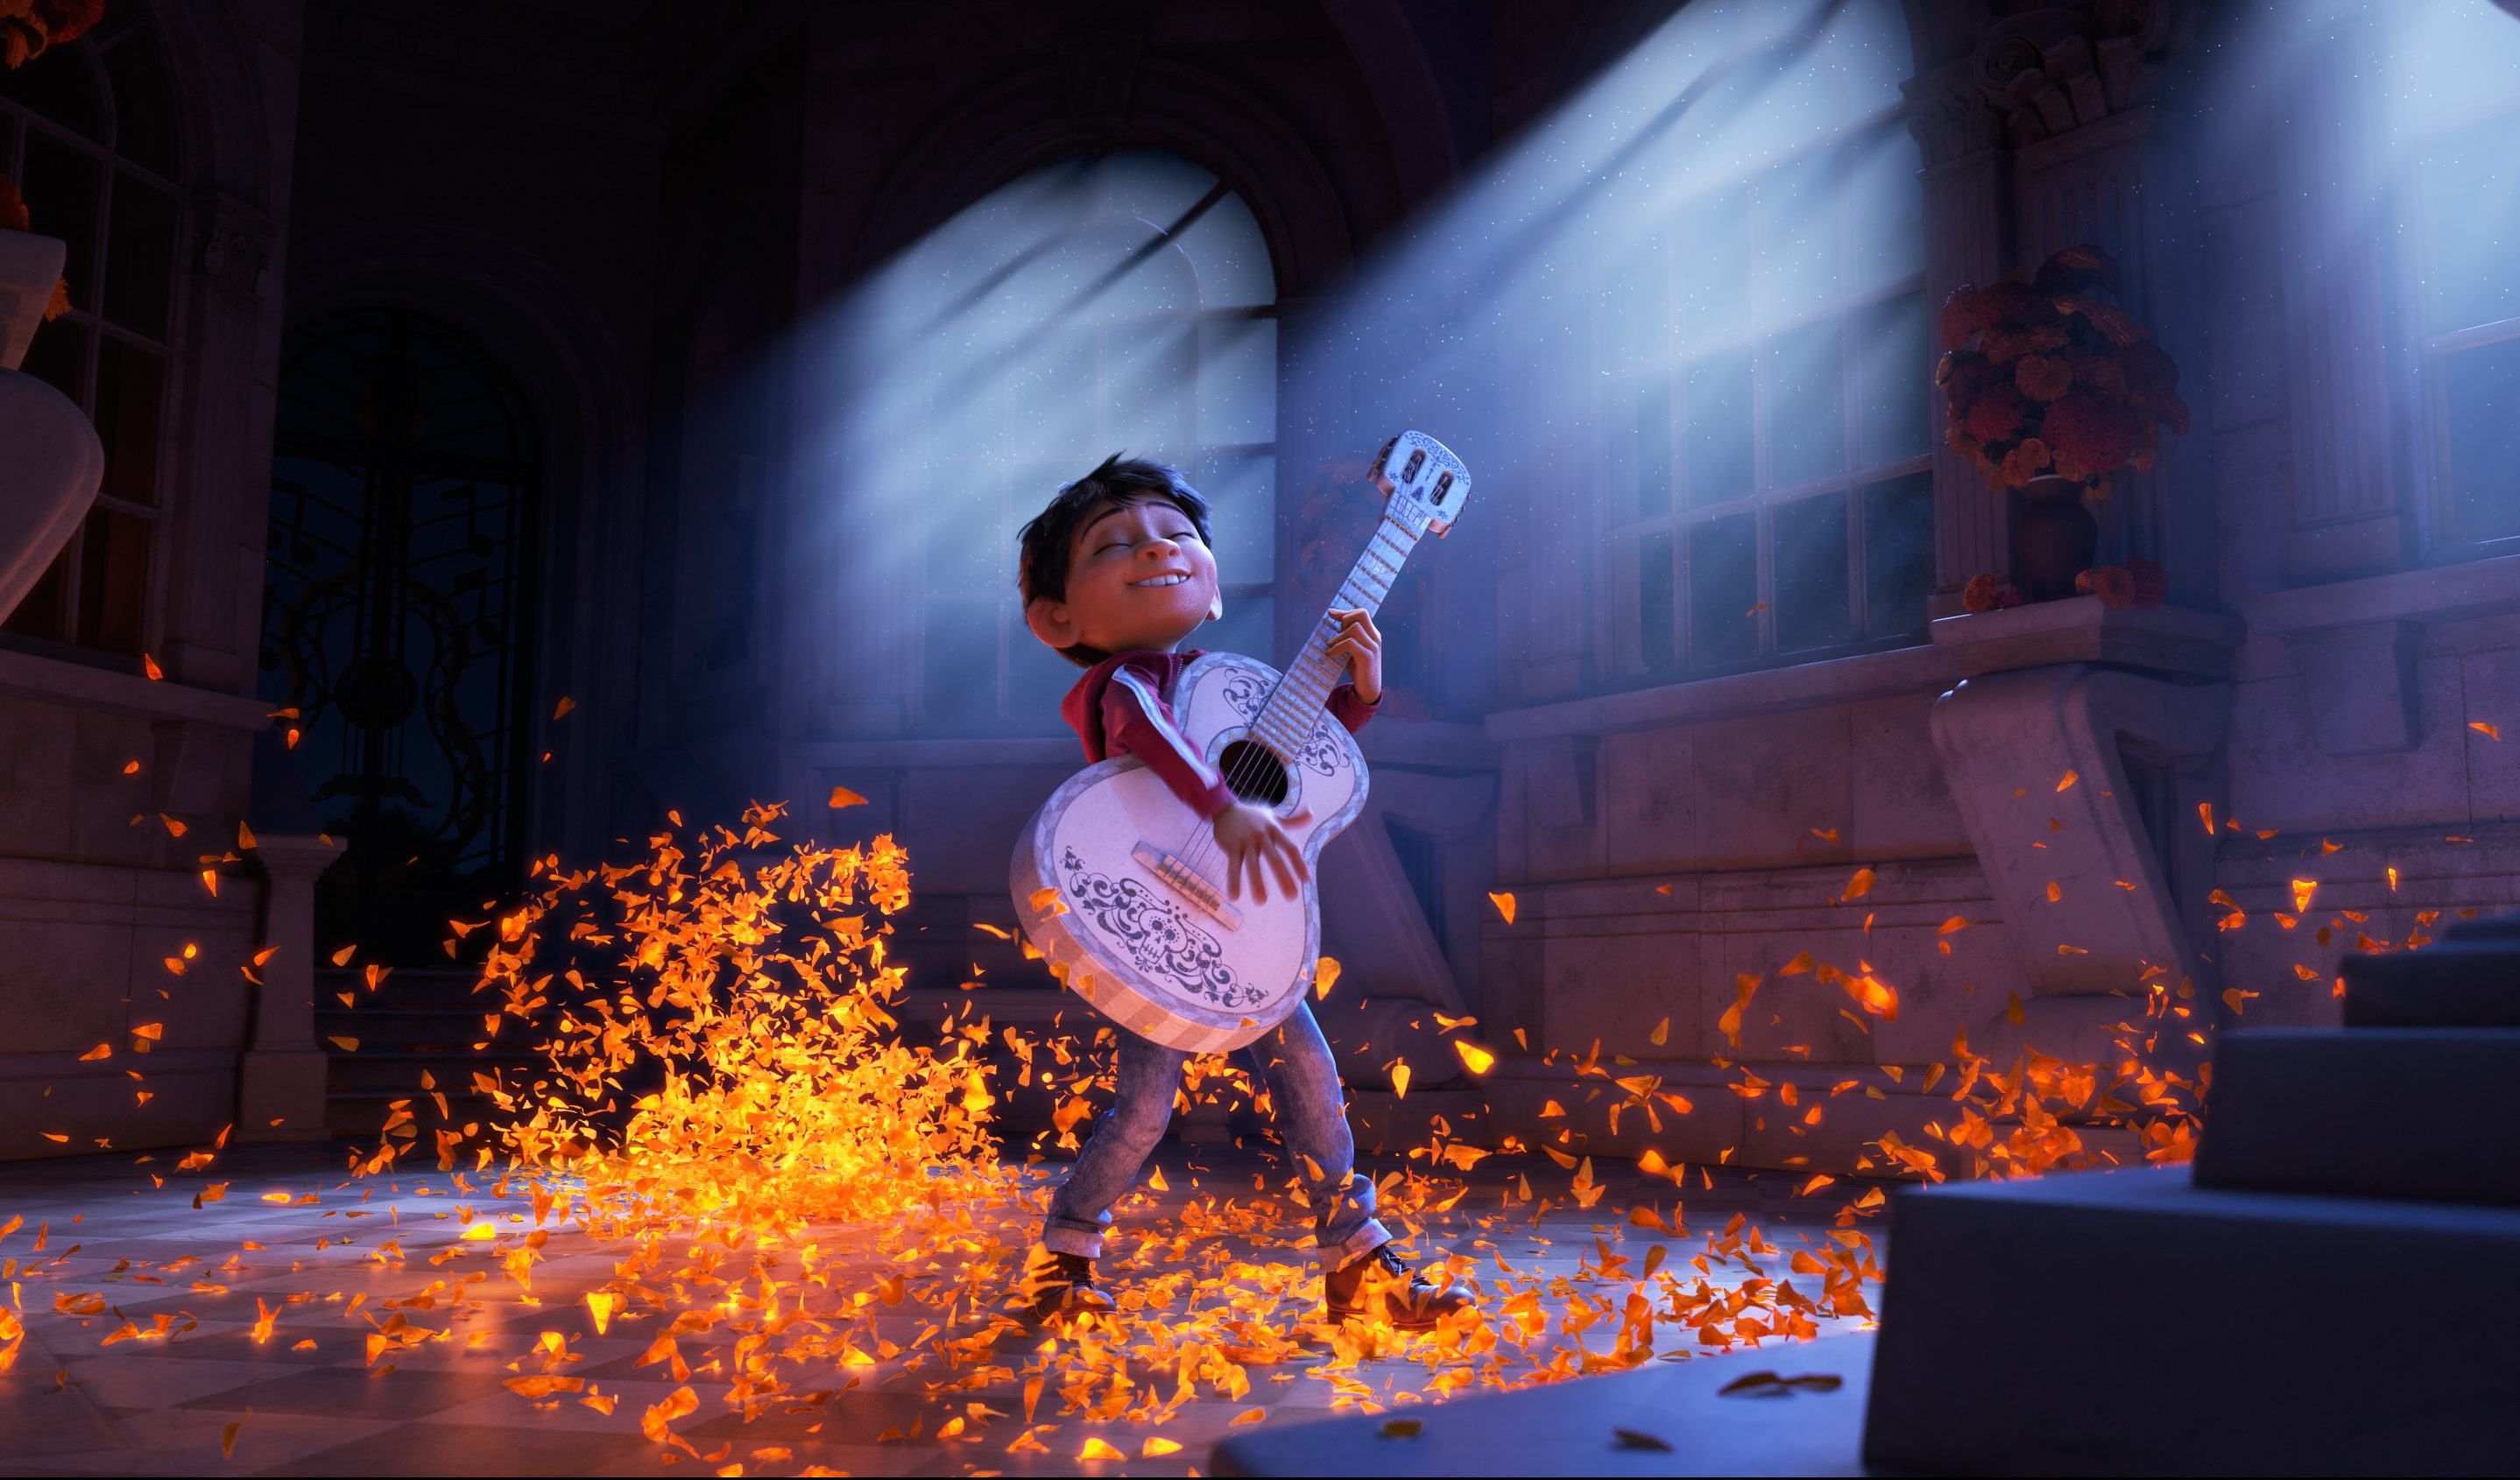 Oscars 2018: Why 'Remember Me' from 'Coco' Will Win Best